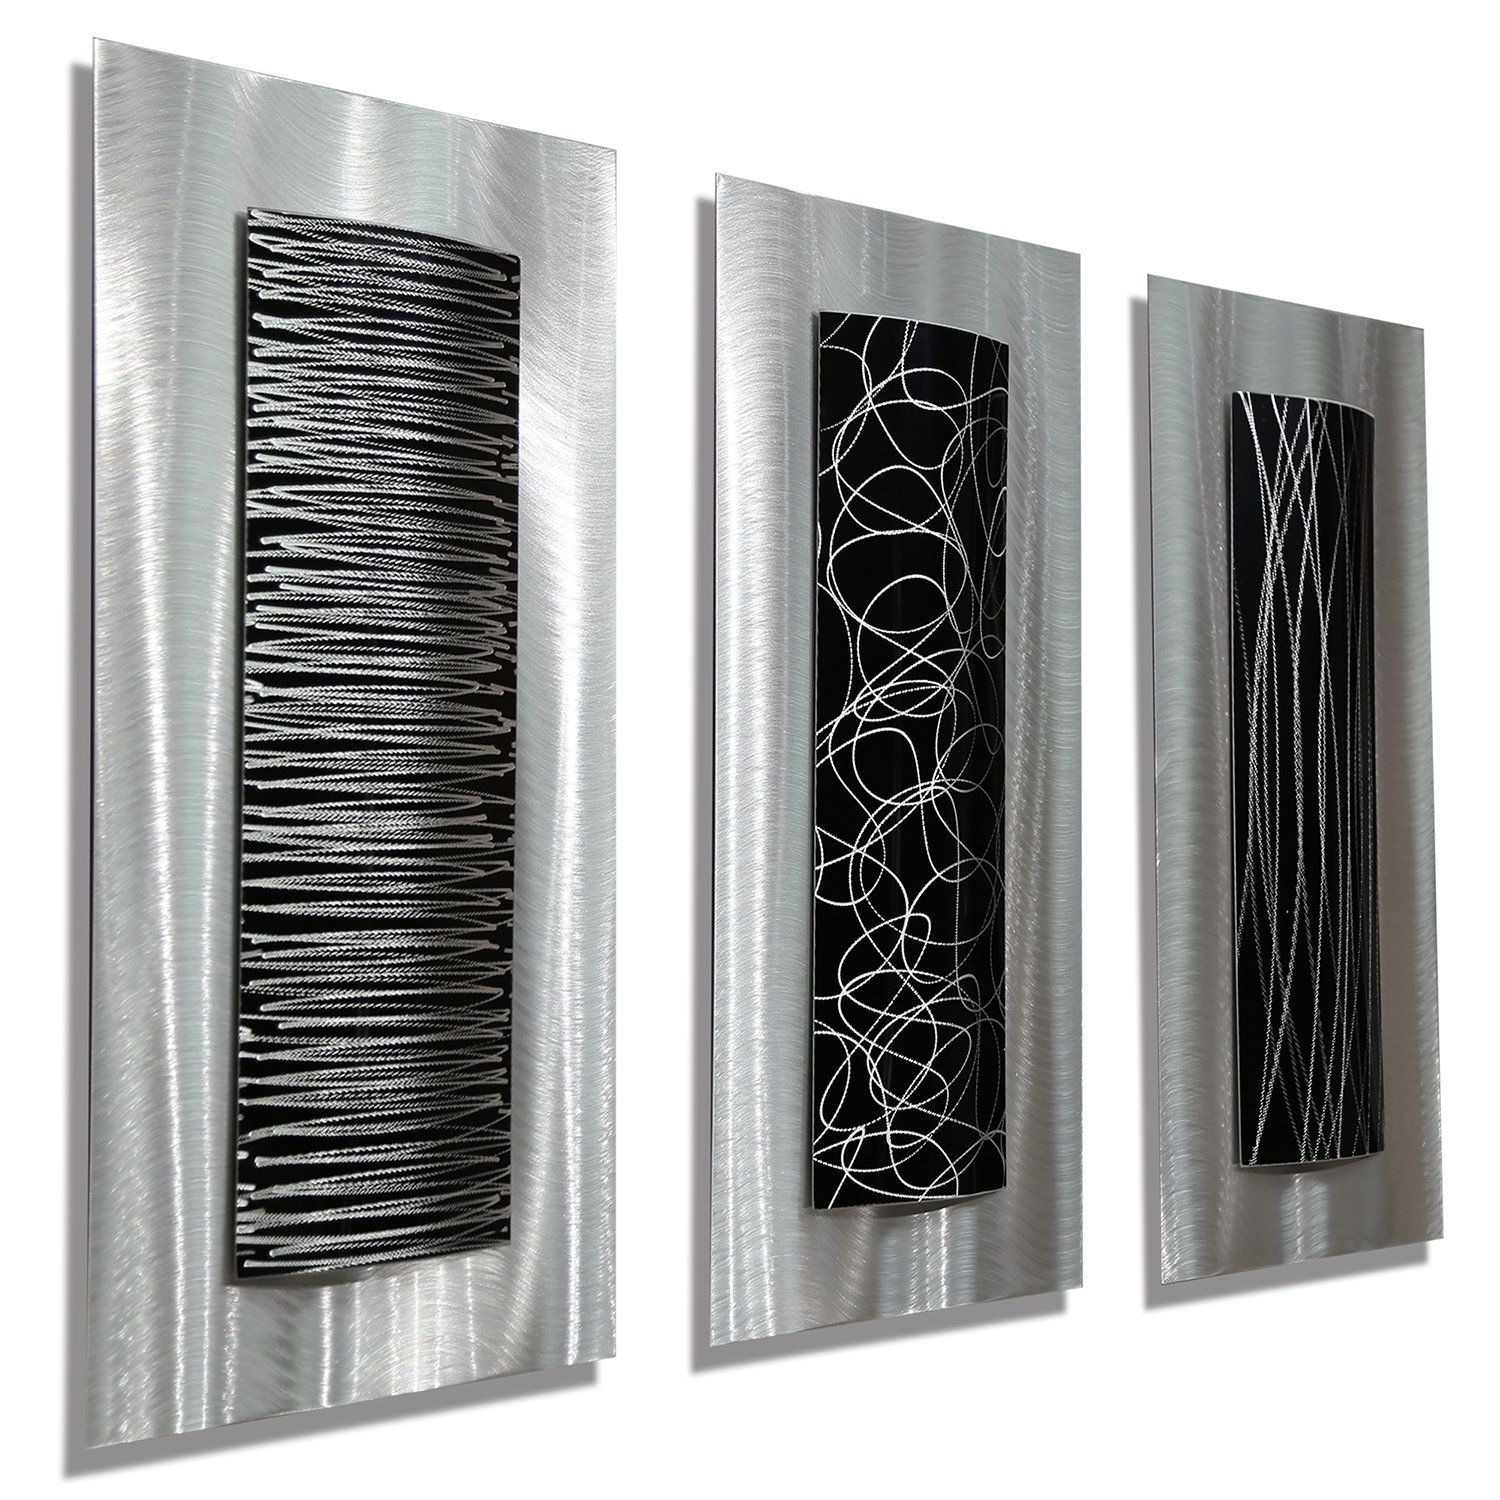 Contemporary Black & Silver Abstract Metal Wall Art Accent Modern Home Decor, Set of Three - Trifecta by Jon Allen by Statements2000